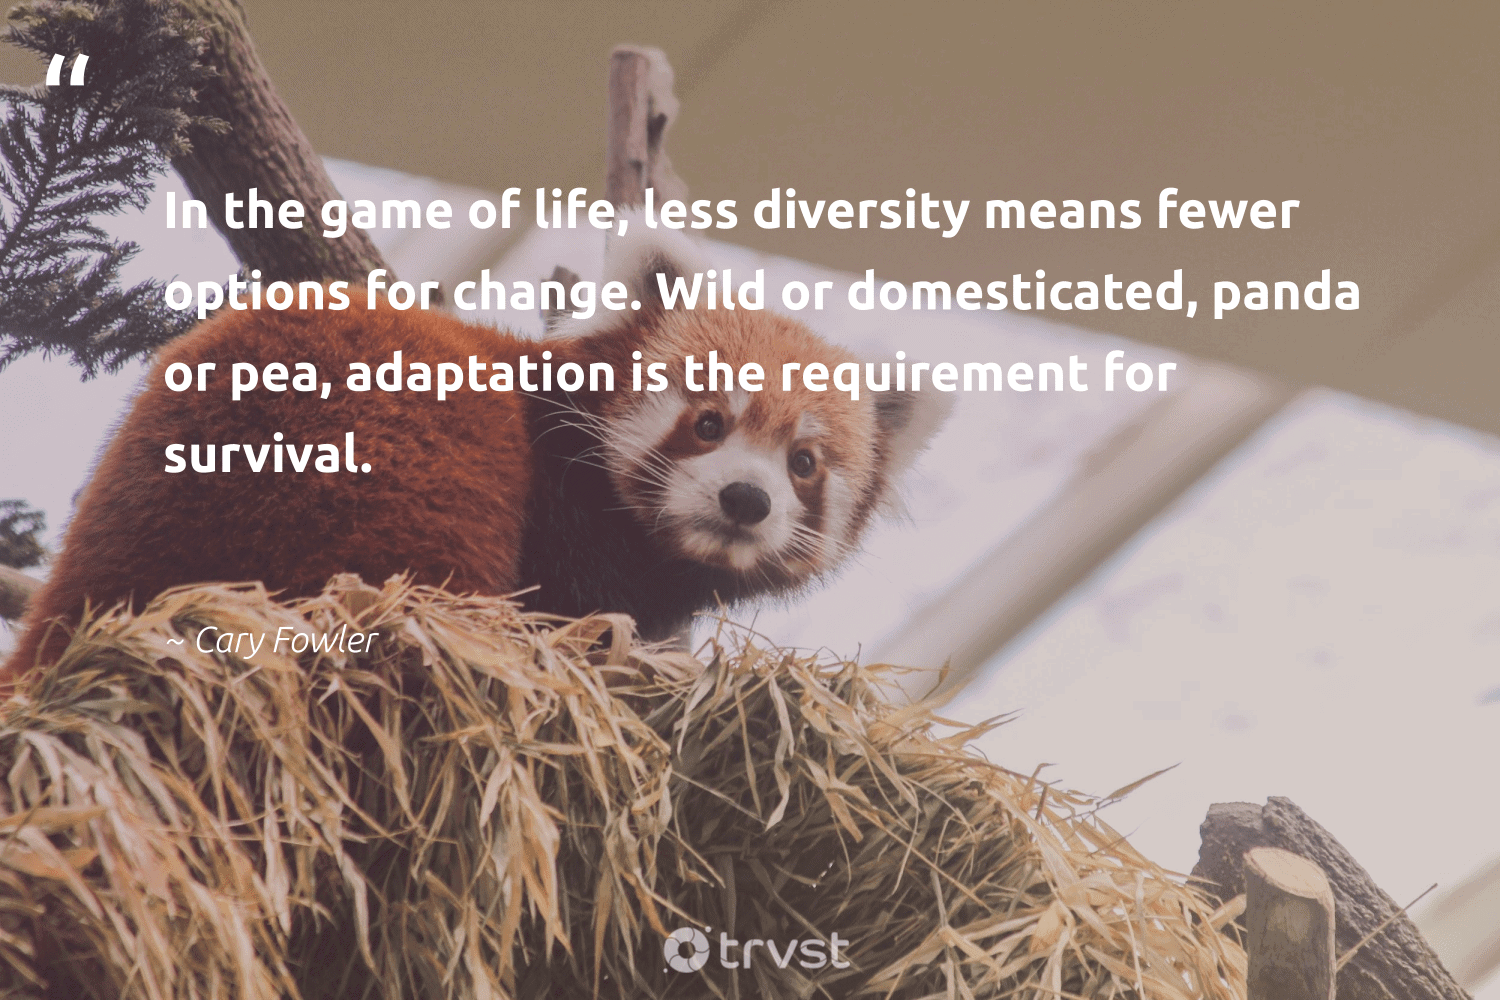 """""""In the game of life, less diversity means fewer options for change. Wild or domesticated, panda or pea, adaptation is the requirement for survival.""""  - Cary Fowler #trvst #quotes #diversity #wild #discrimination #representationmatters #bear #weareallone #bethechange #inclusion #bears #socialgood"""